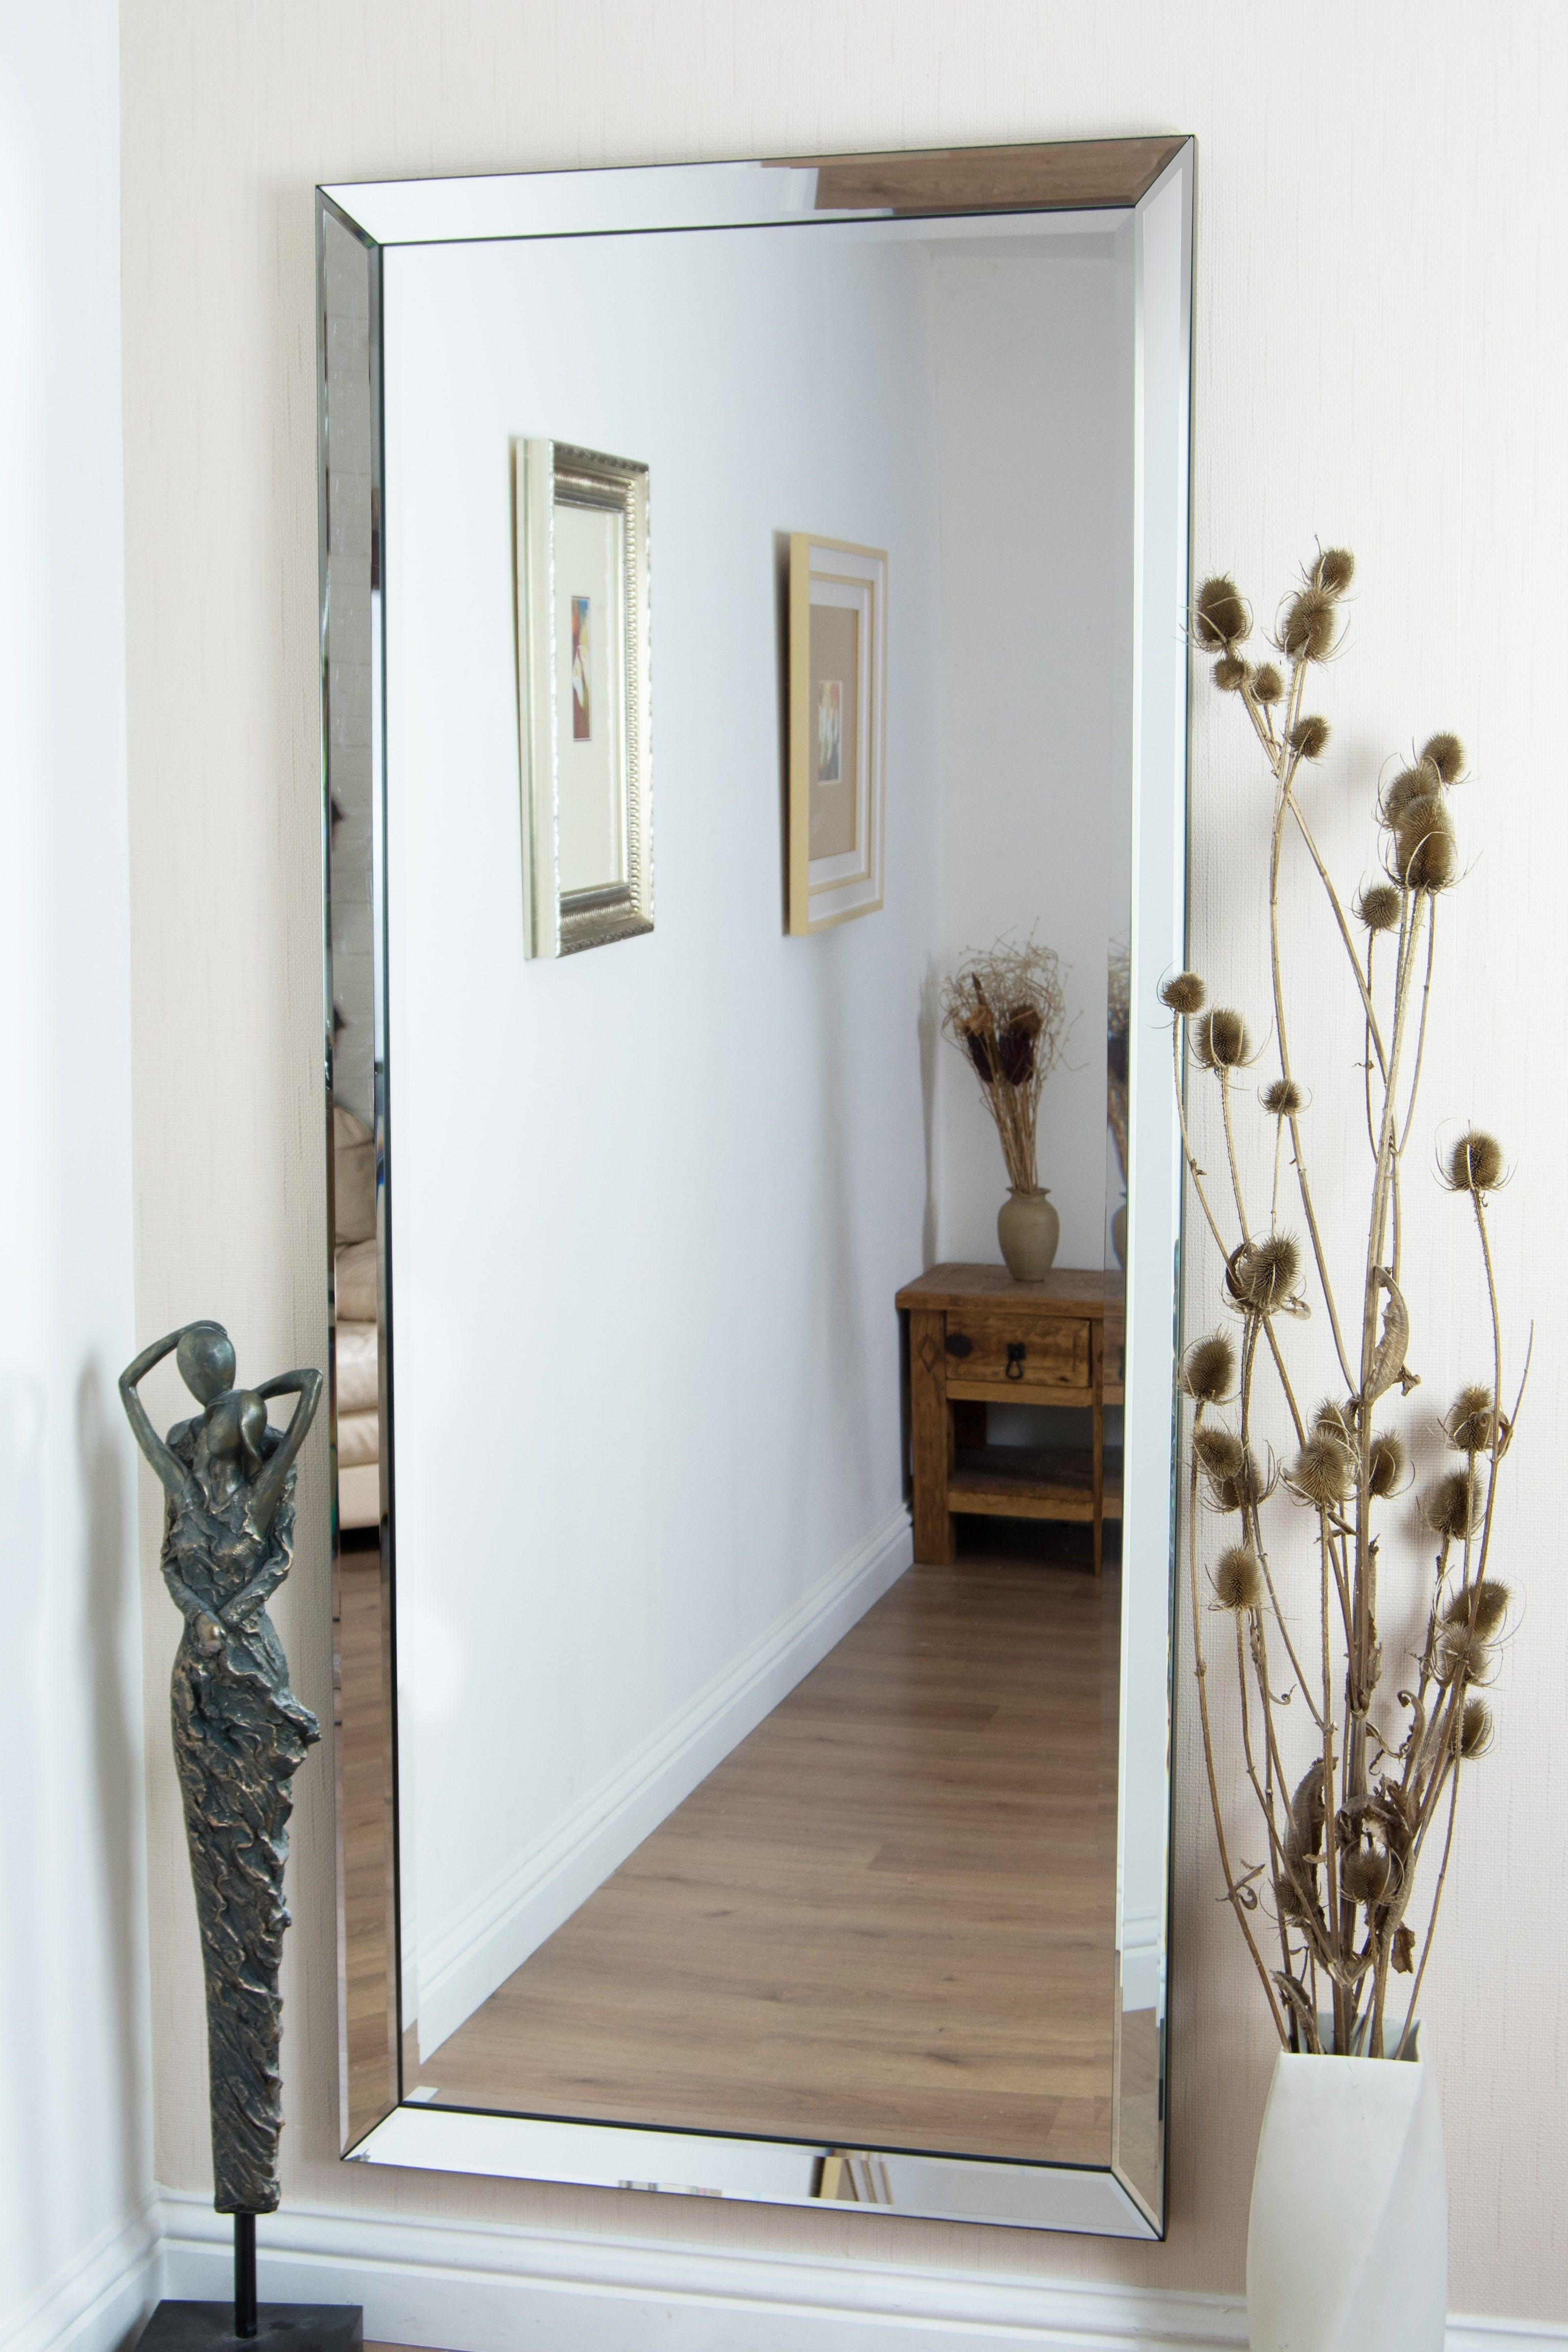 Hang Wall Mirrors Within Most Current Faszinierend Hang Mirror On Wall Block Concrete Lath Frameless (Gallery 10 of 20)